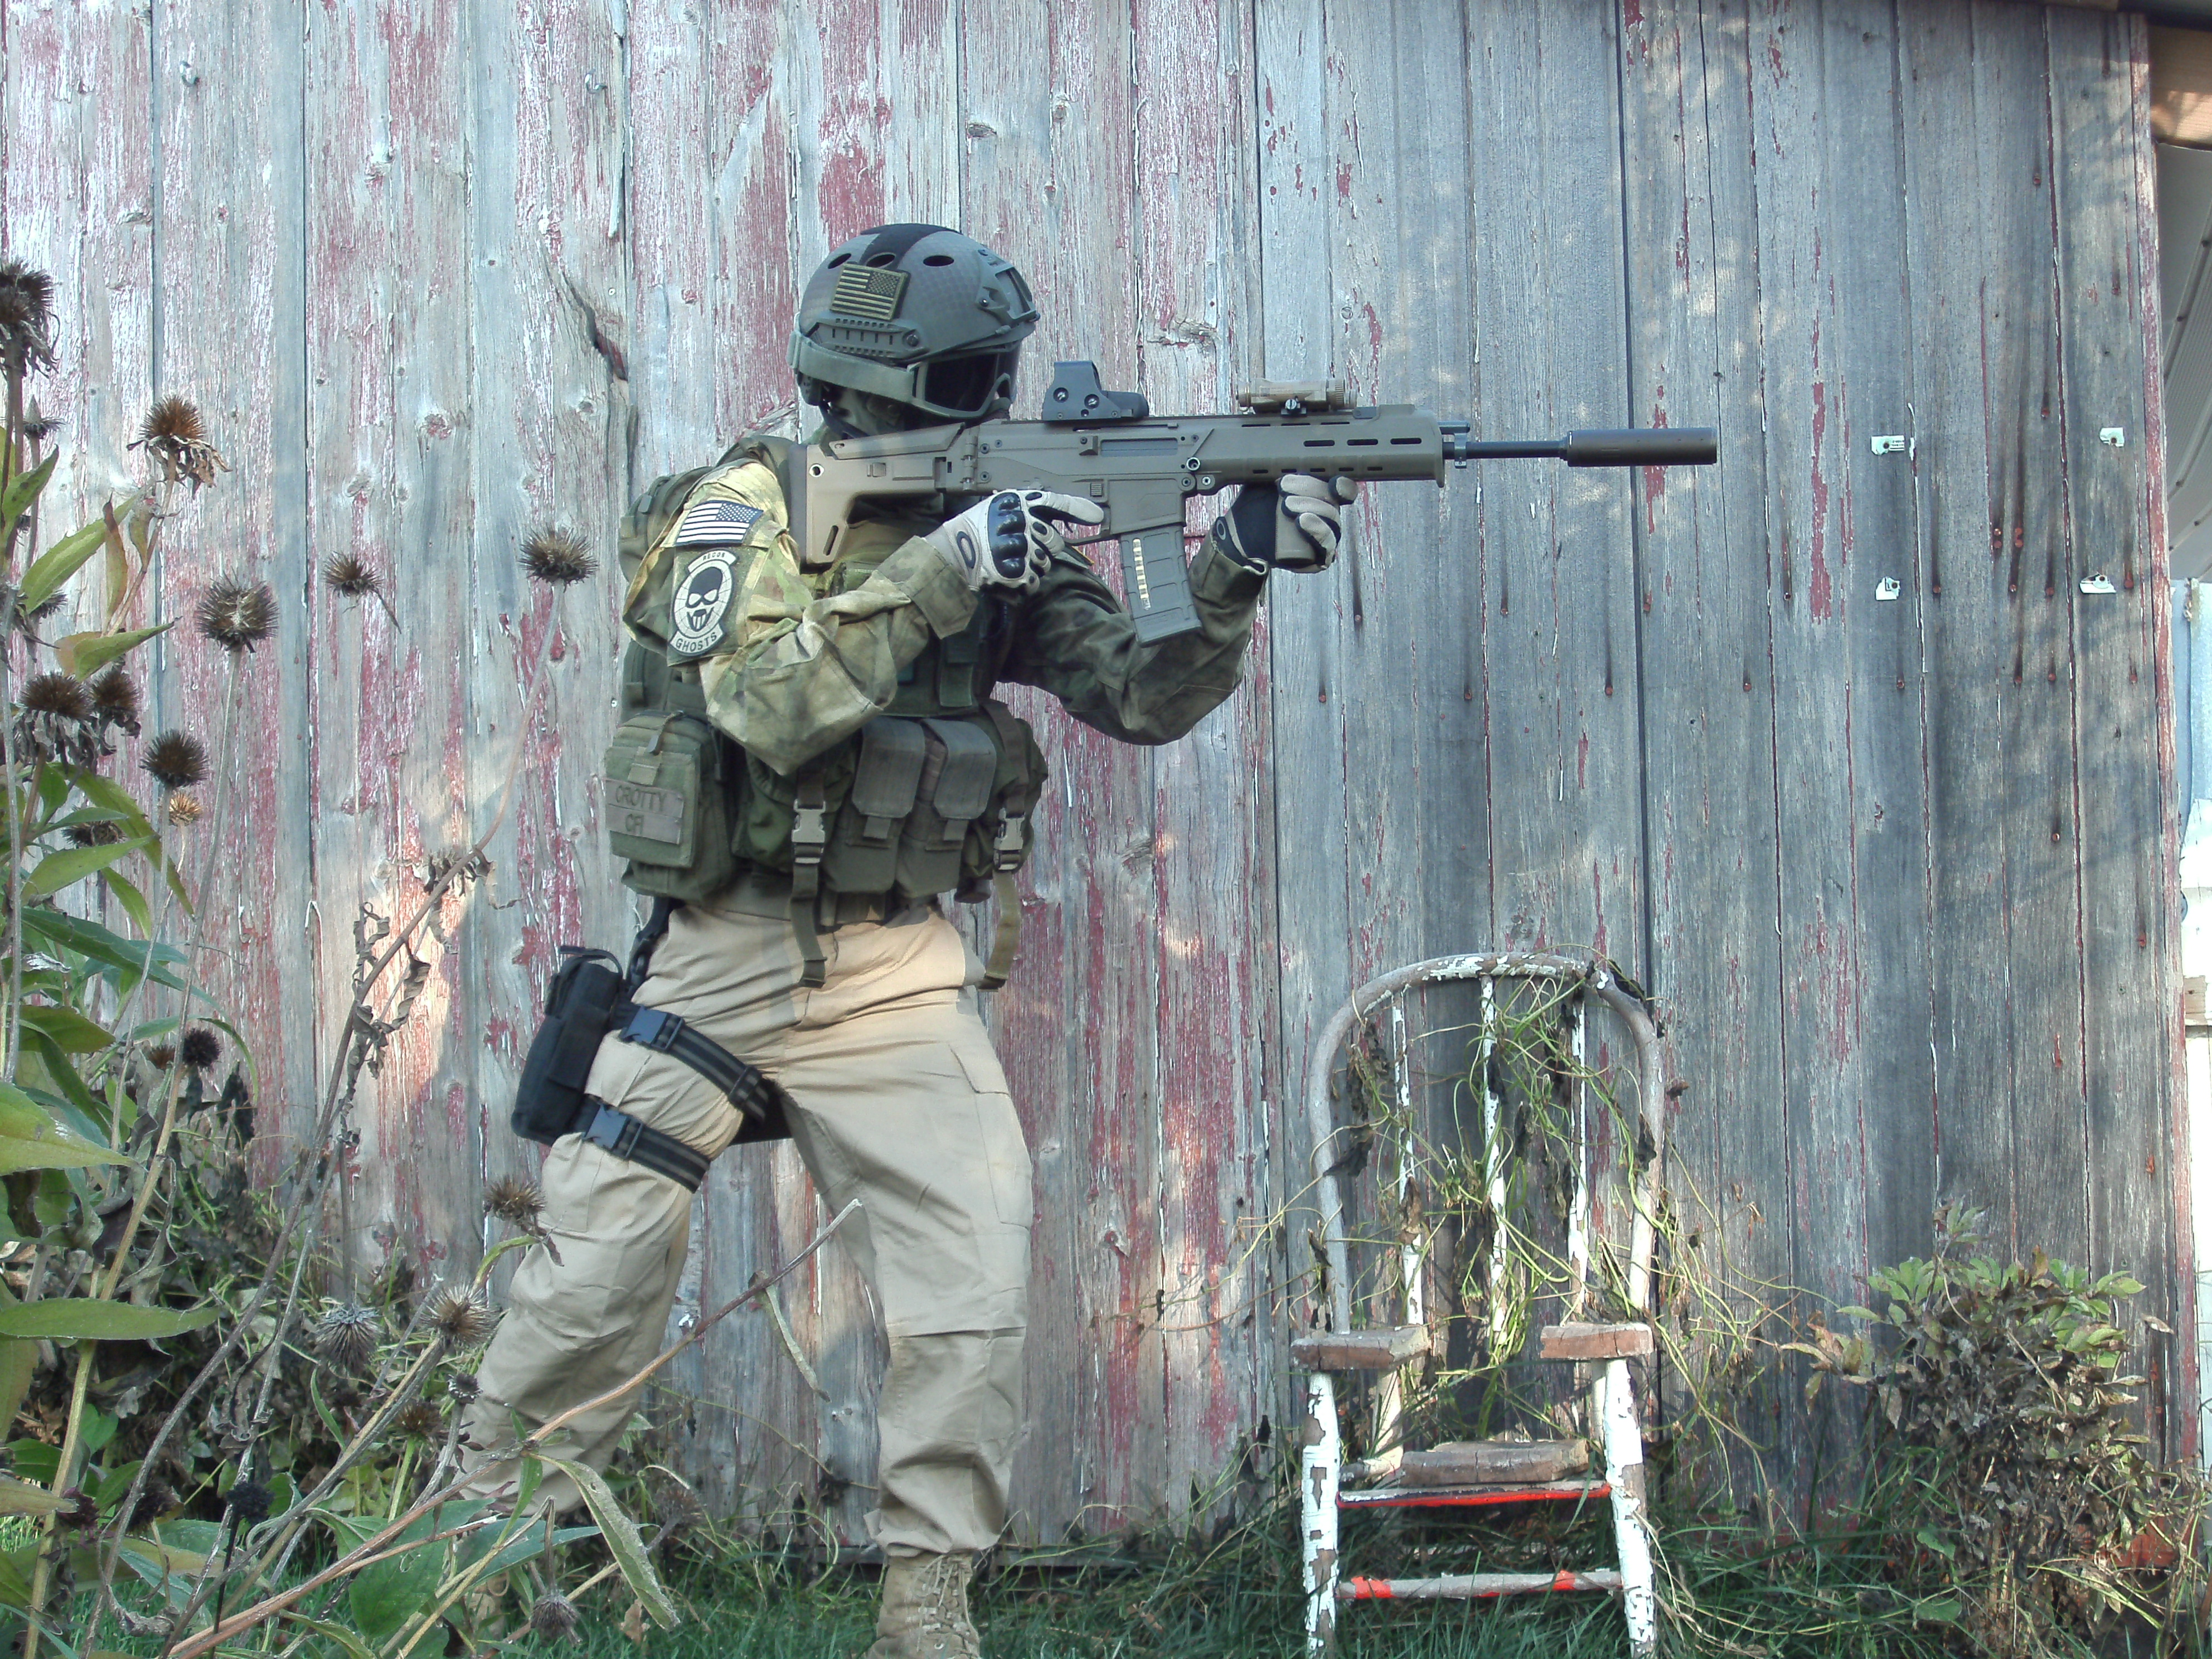 ghost recon future soldier inspired atacs fg loadout